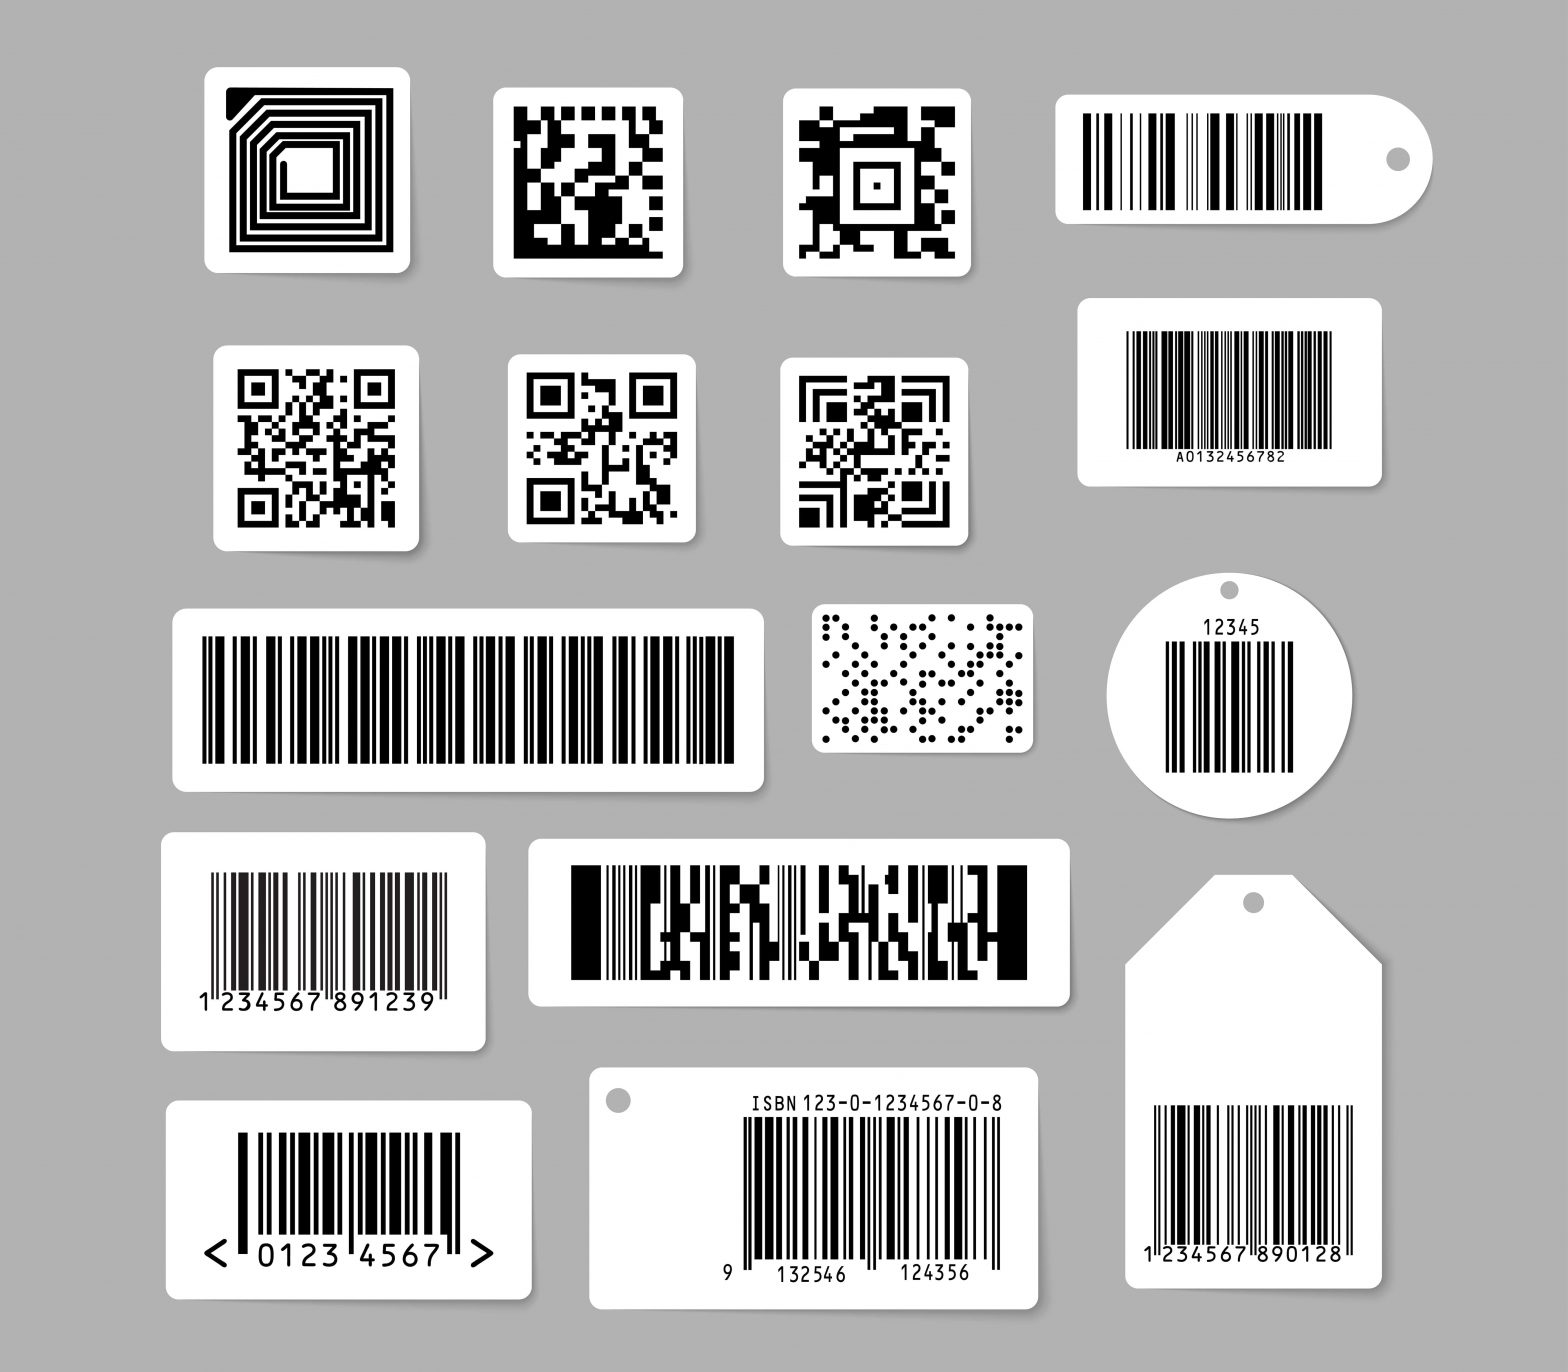 What is a barcode